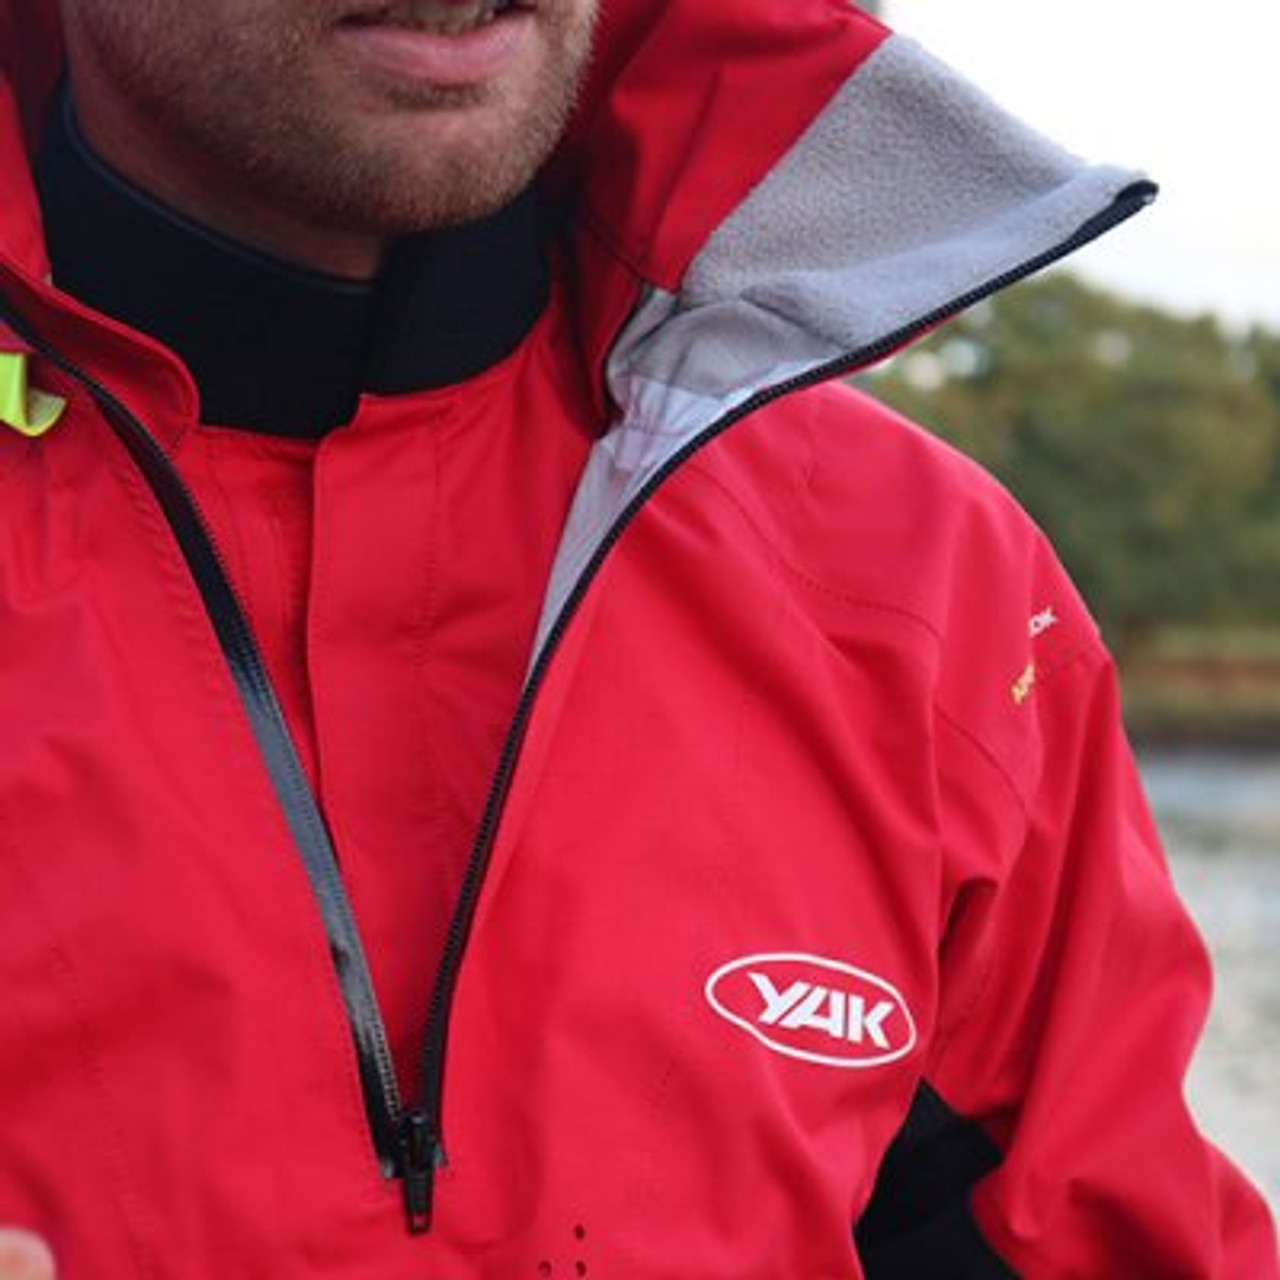 The Apollo touring cag is waterproof and breathable. Features a high storm collar with adjustable inner PU neck seal.